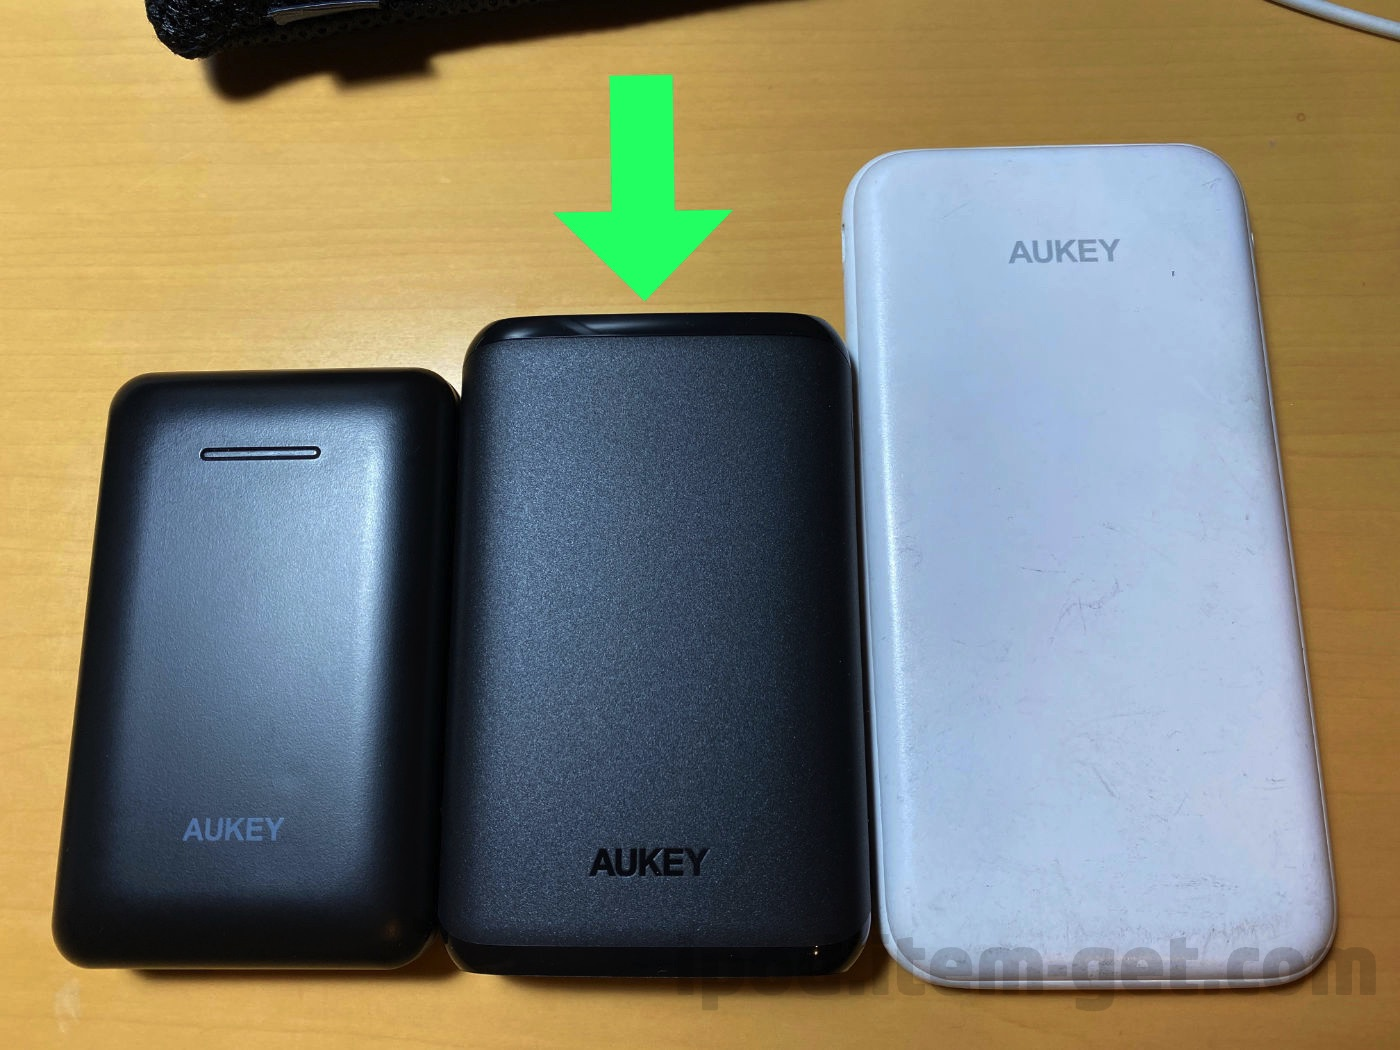 Aukey battery10000mah comparison 01